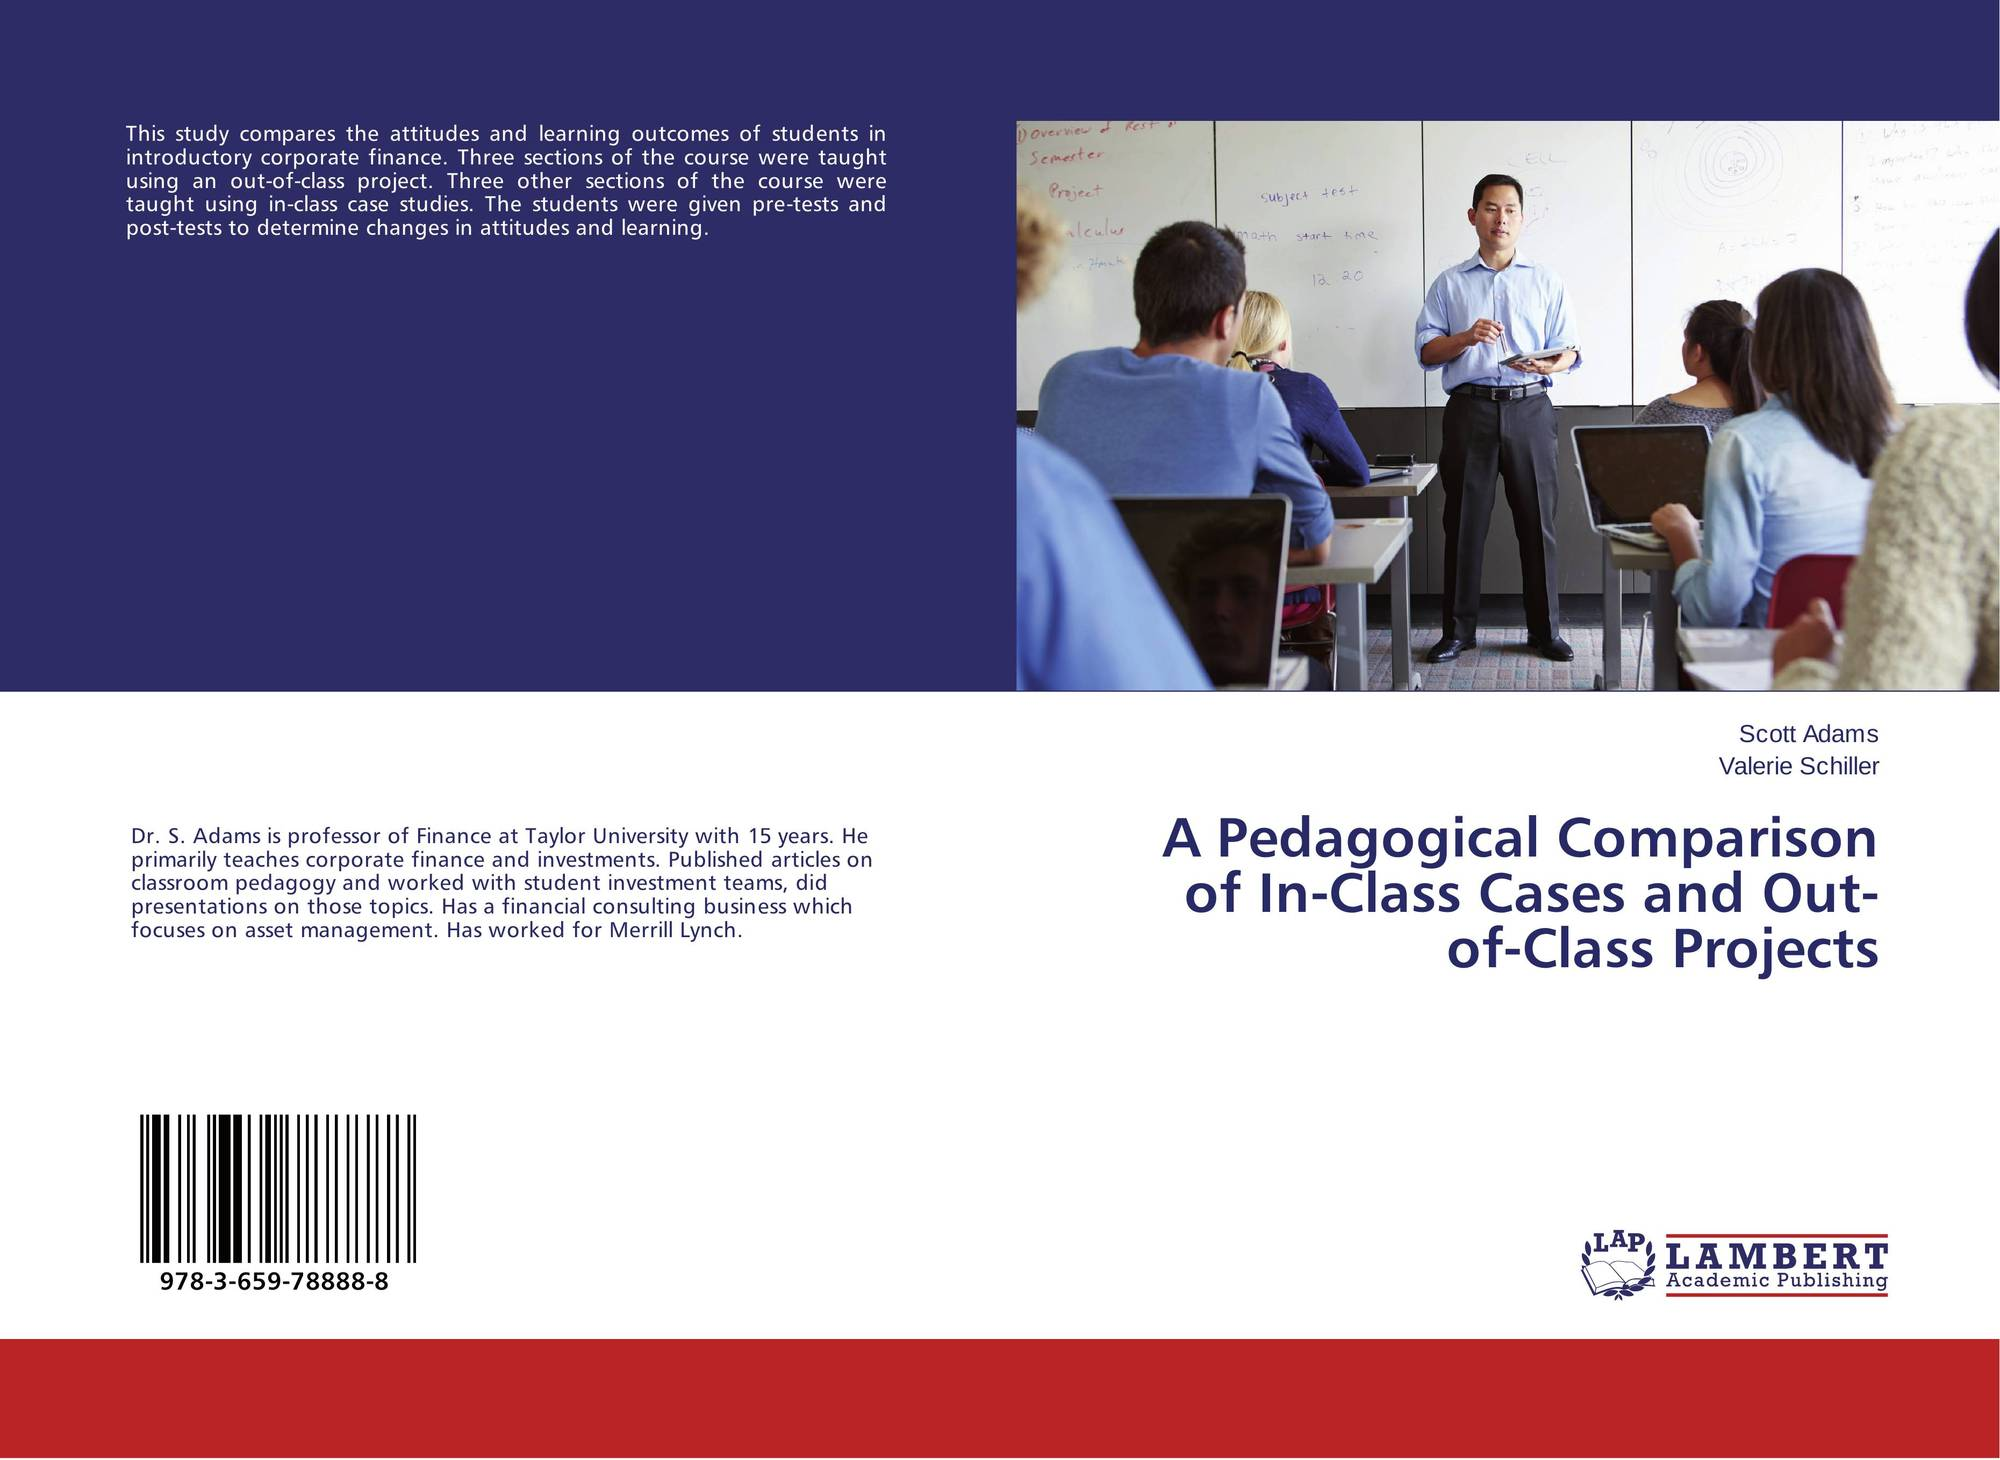 a comparative case study of classroom An overview of the types of case study designs is provided along with general recommendations qualitative, comparative, and historical methodologies commons.